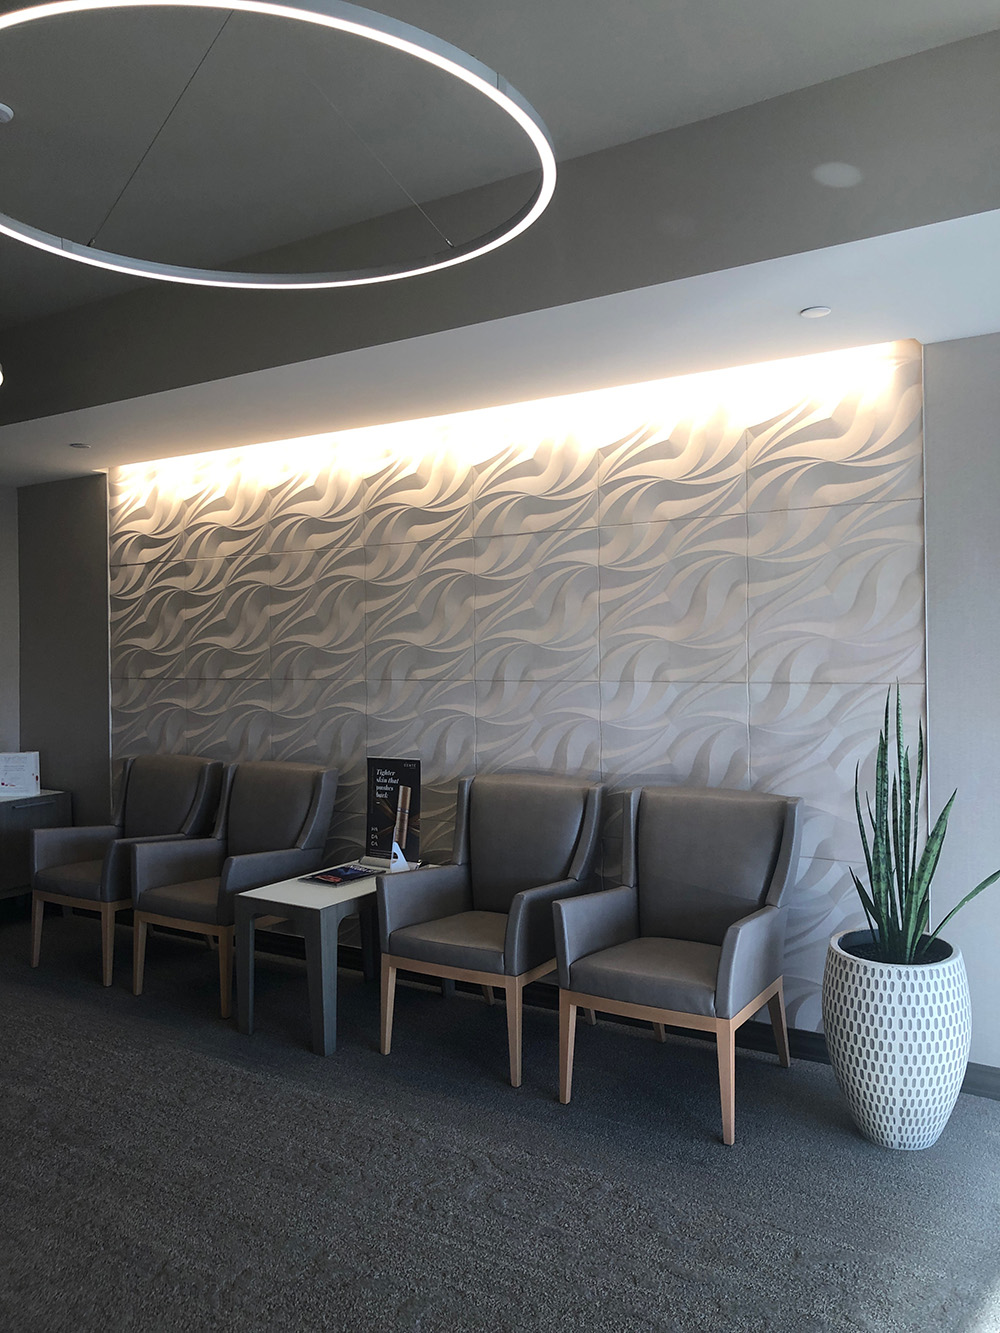 Another view of the stylish waiting area.